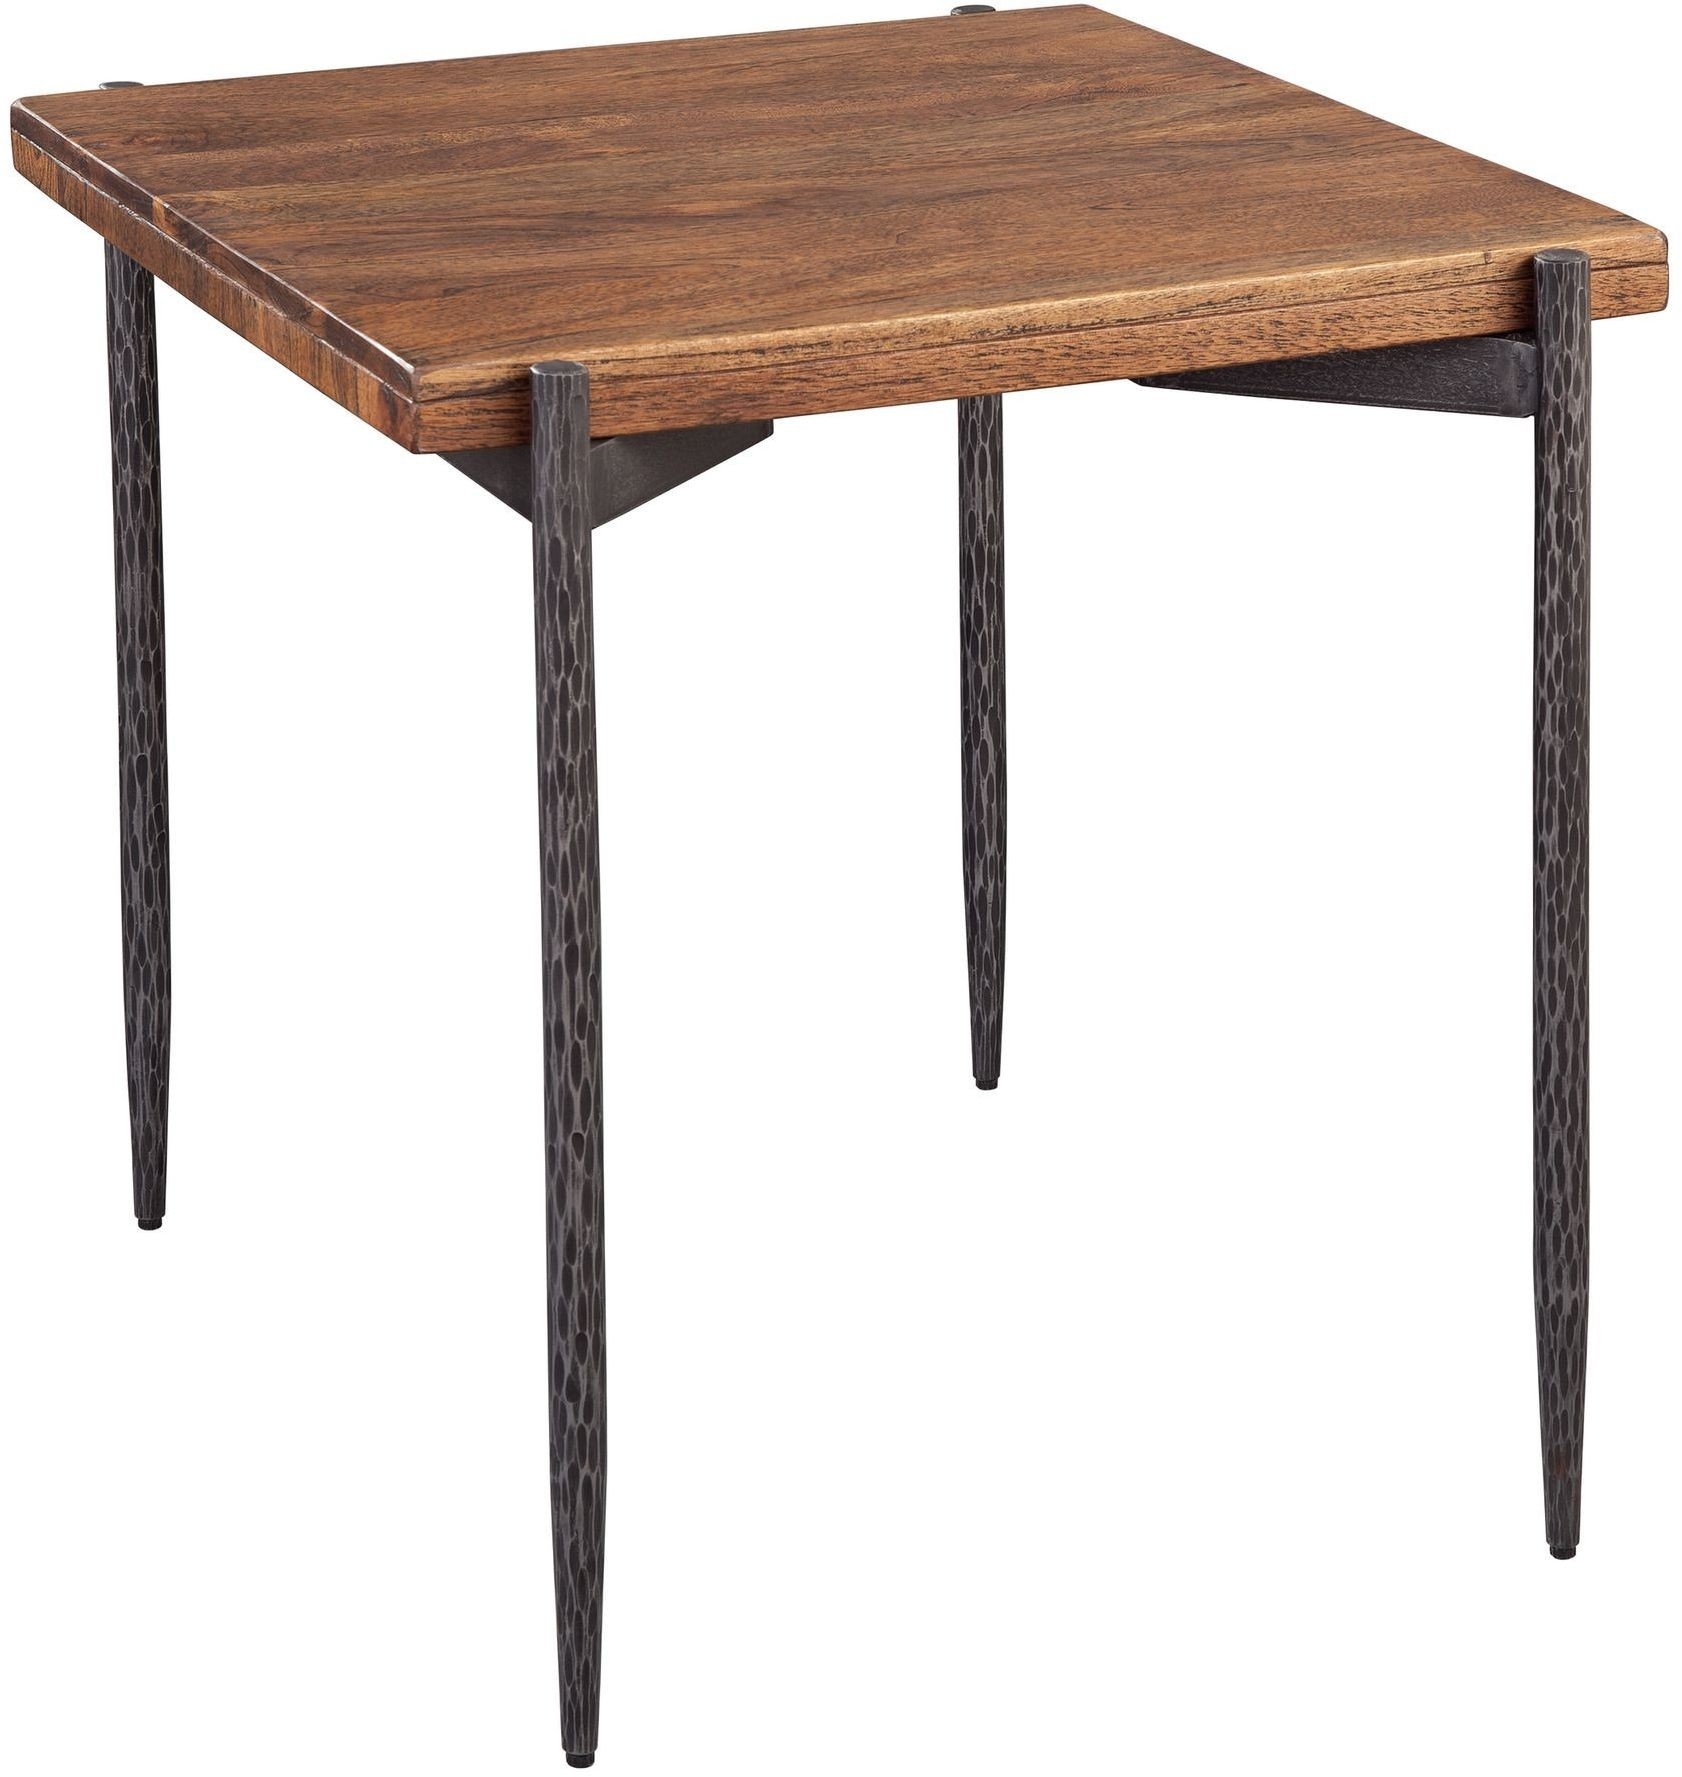 Coffee Table Legs Brown: Brown Square Forged Leg Coffee Table From Hekman Furniture